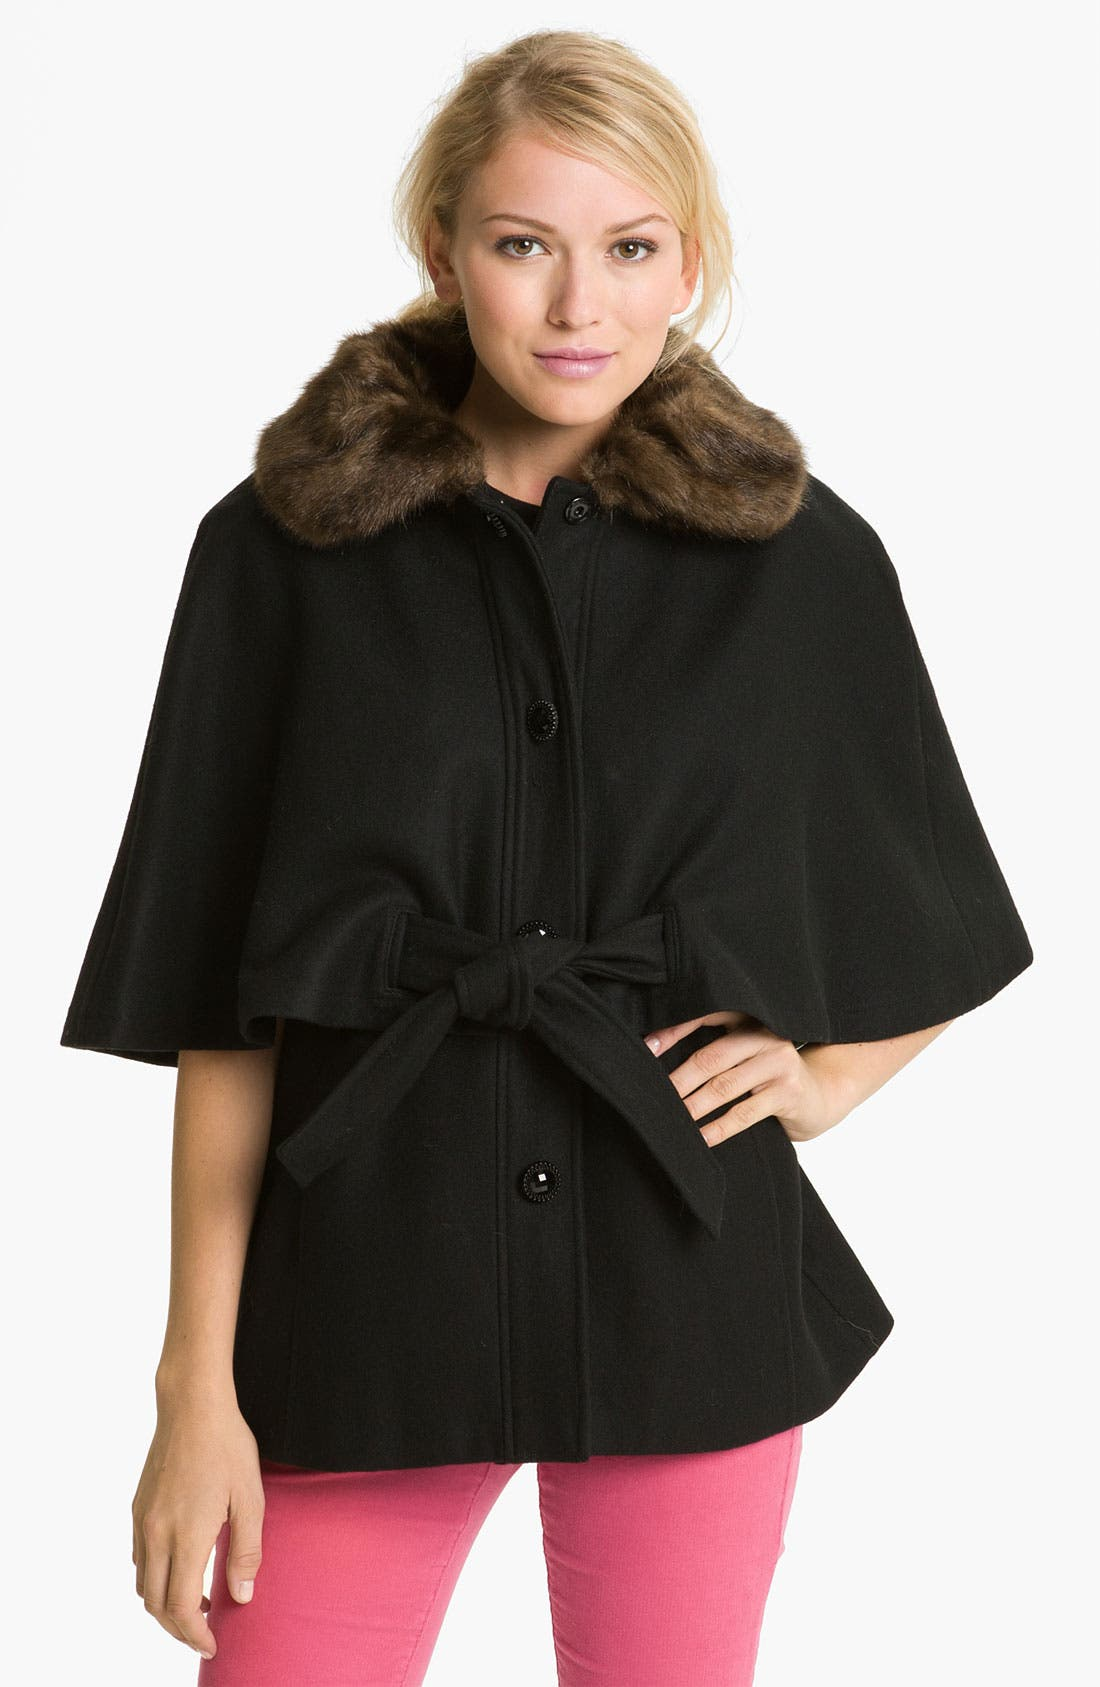 Alternate Image 1 Selected - Betsey Johnson Faux Fur Collar Cape (Online Exclusive)